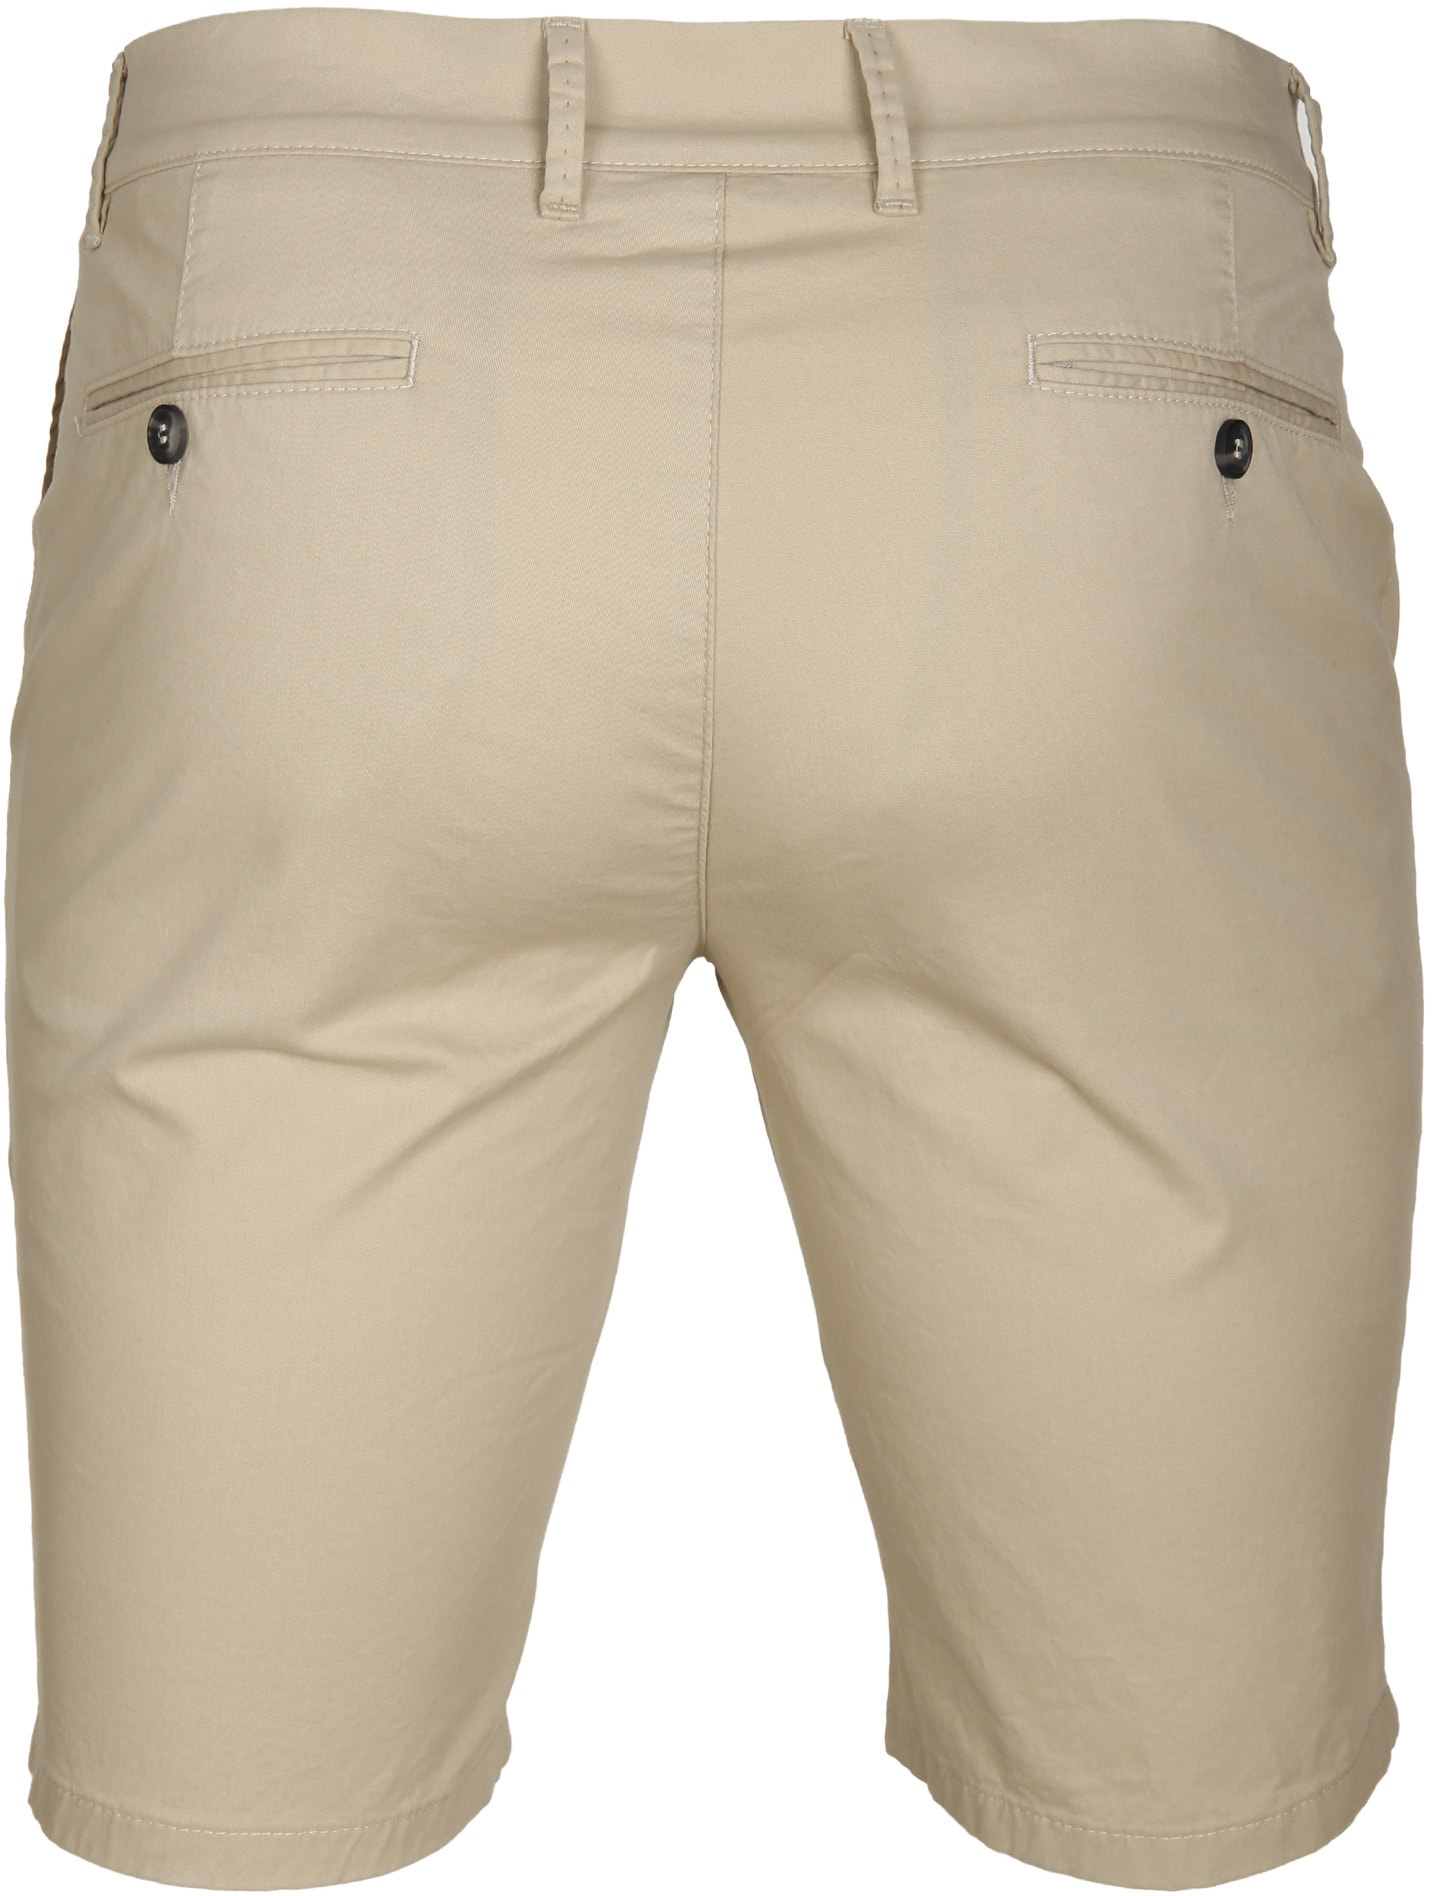 Suitable Chino Short Beige foto 2